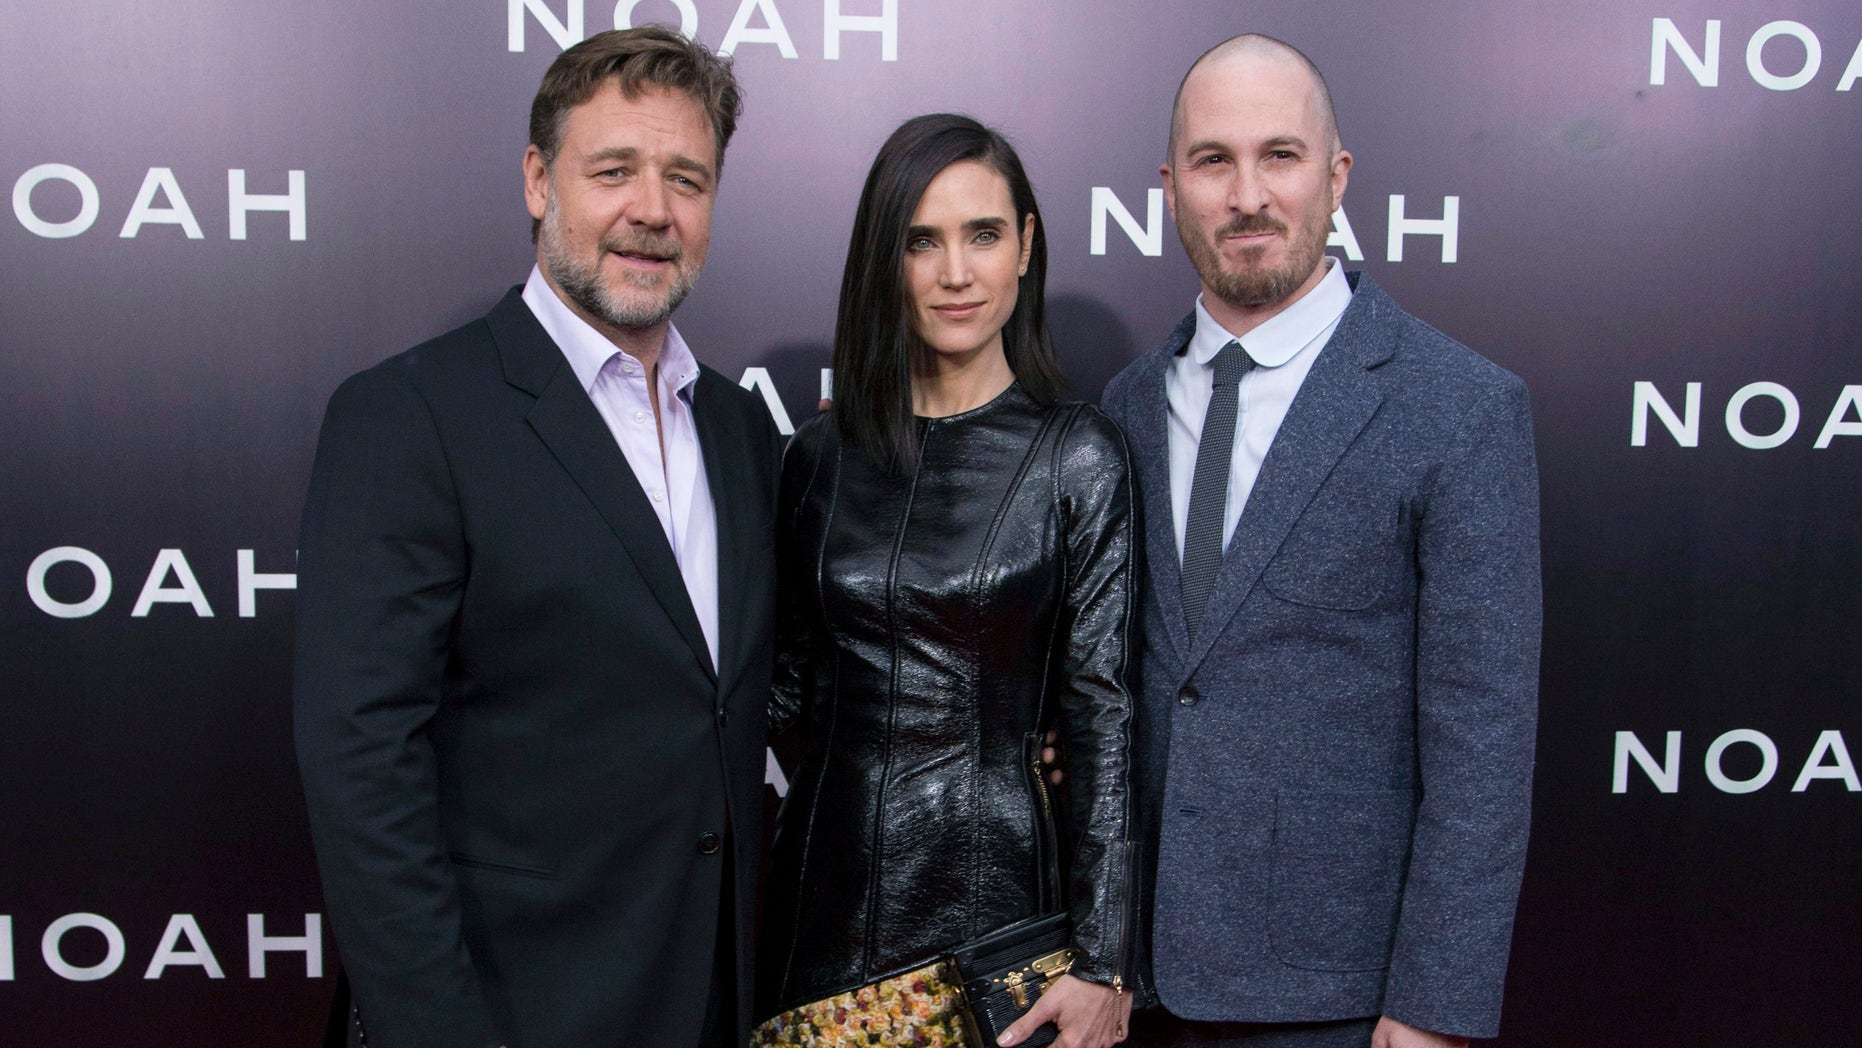 """March 26, 2014. (L-R) Cast members Russell Crowe and Jennifer Connelly pose with director Darren Aronofsky during the U.S. premiere of """"Noah"""" in New York."""